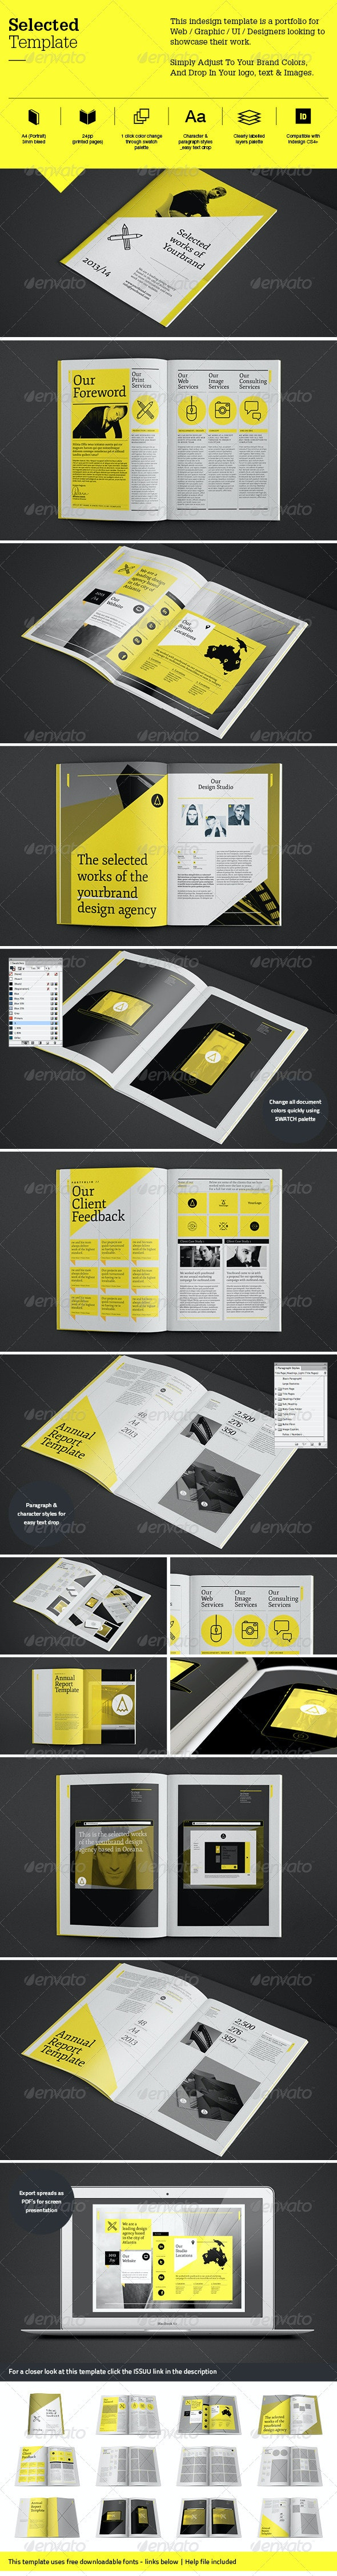 Selected Template - Portfolio Brochures